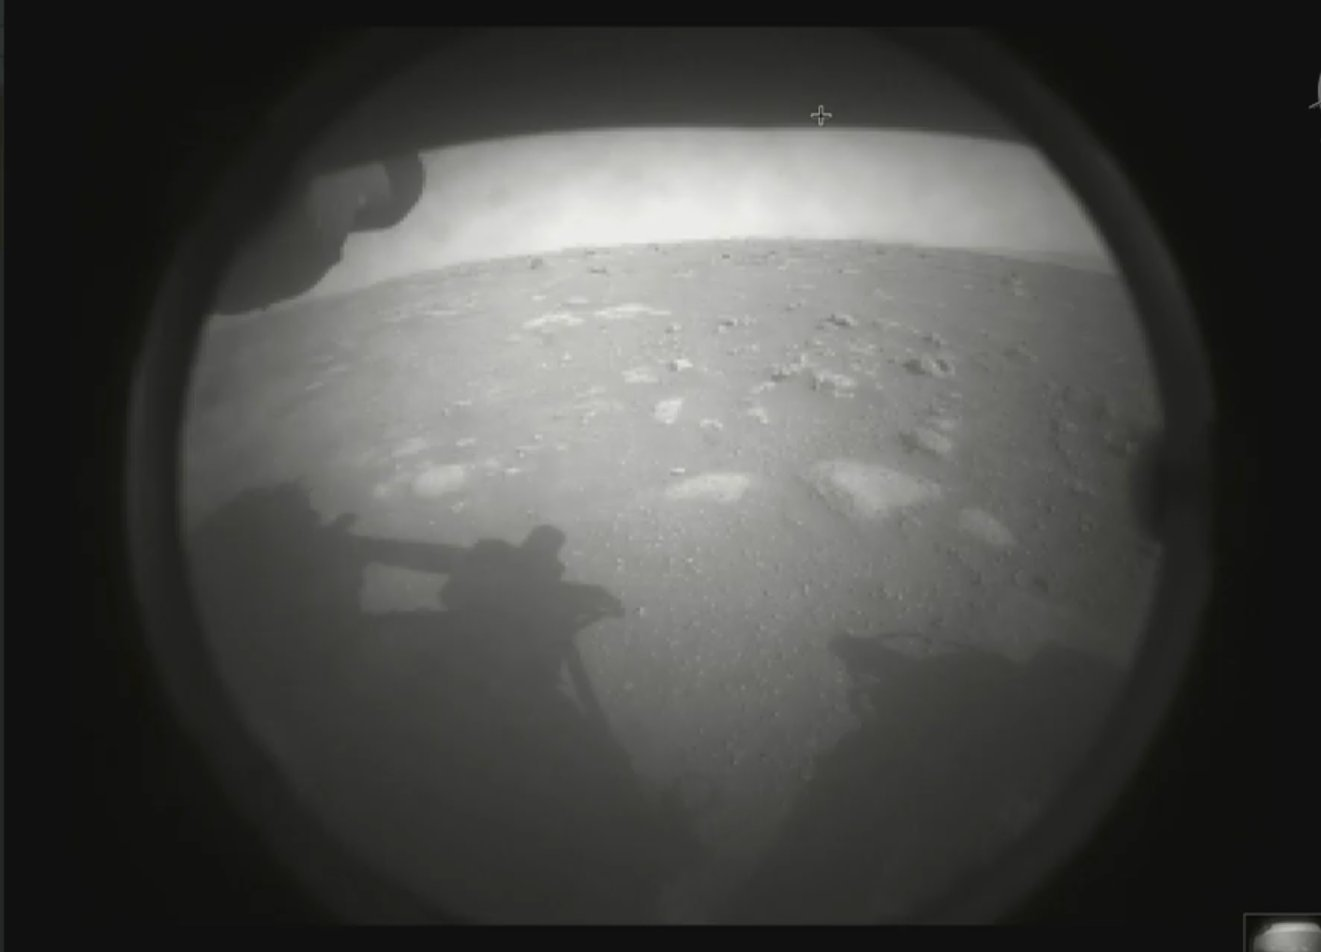 NASA rover successfully lands on Mars to look for signs of ancient life